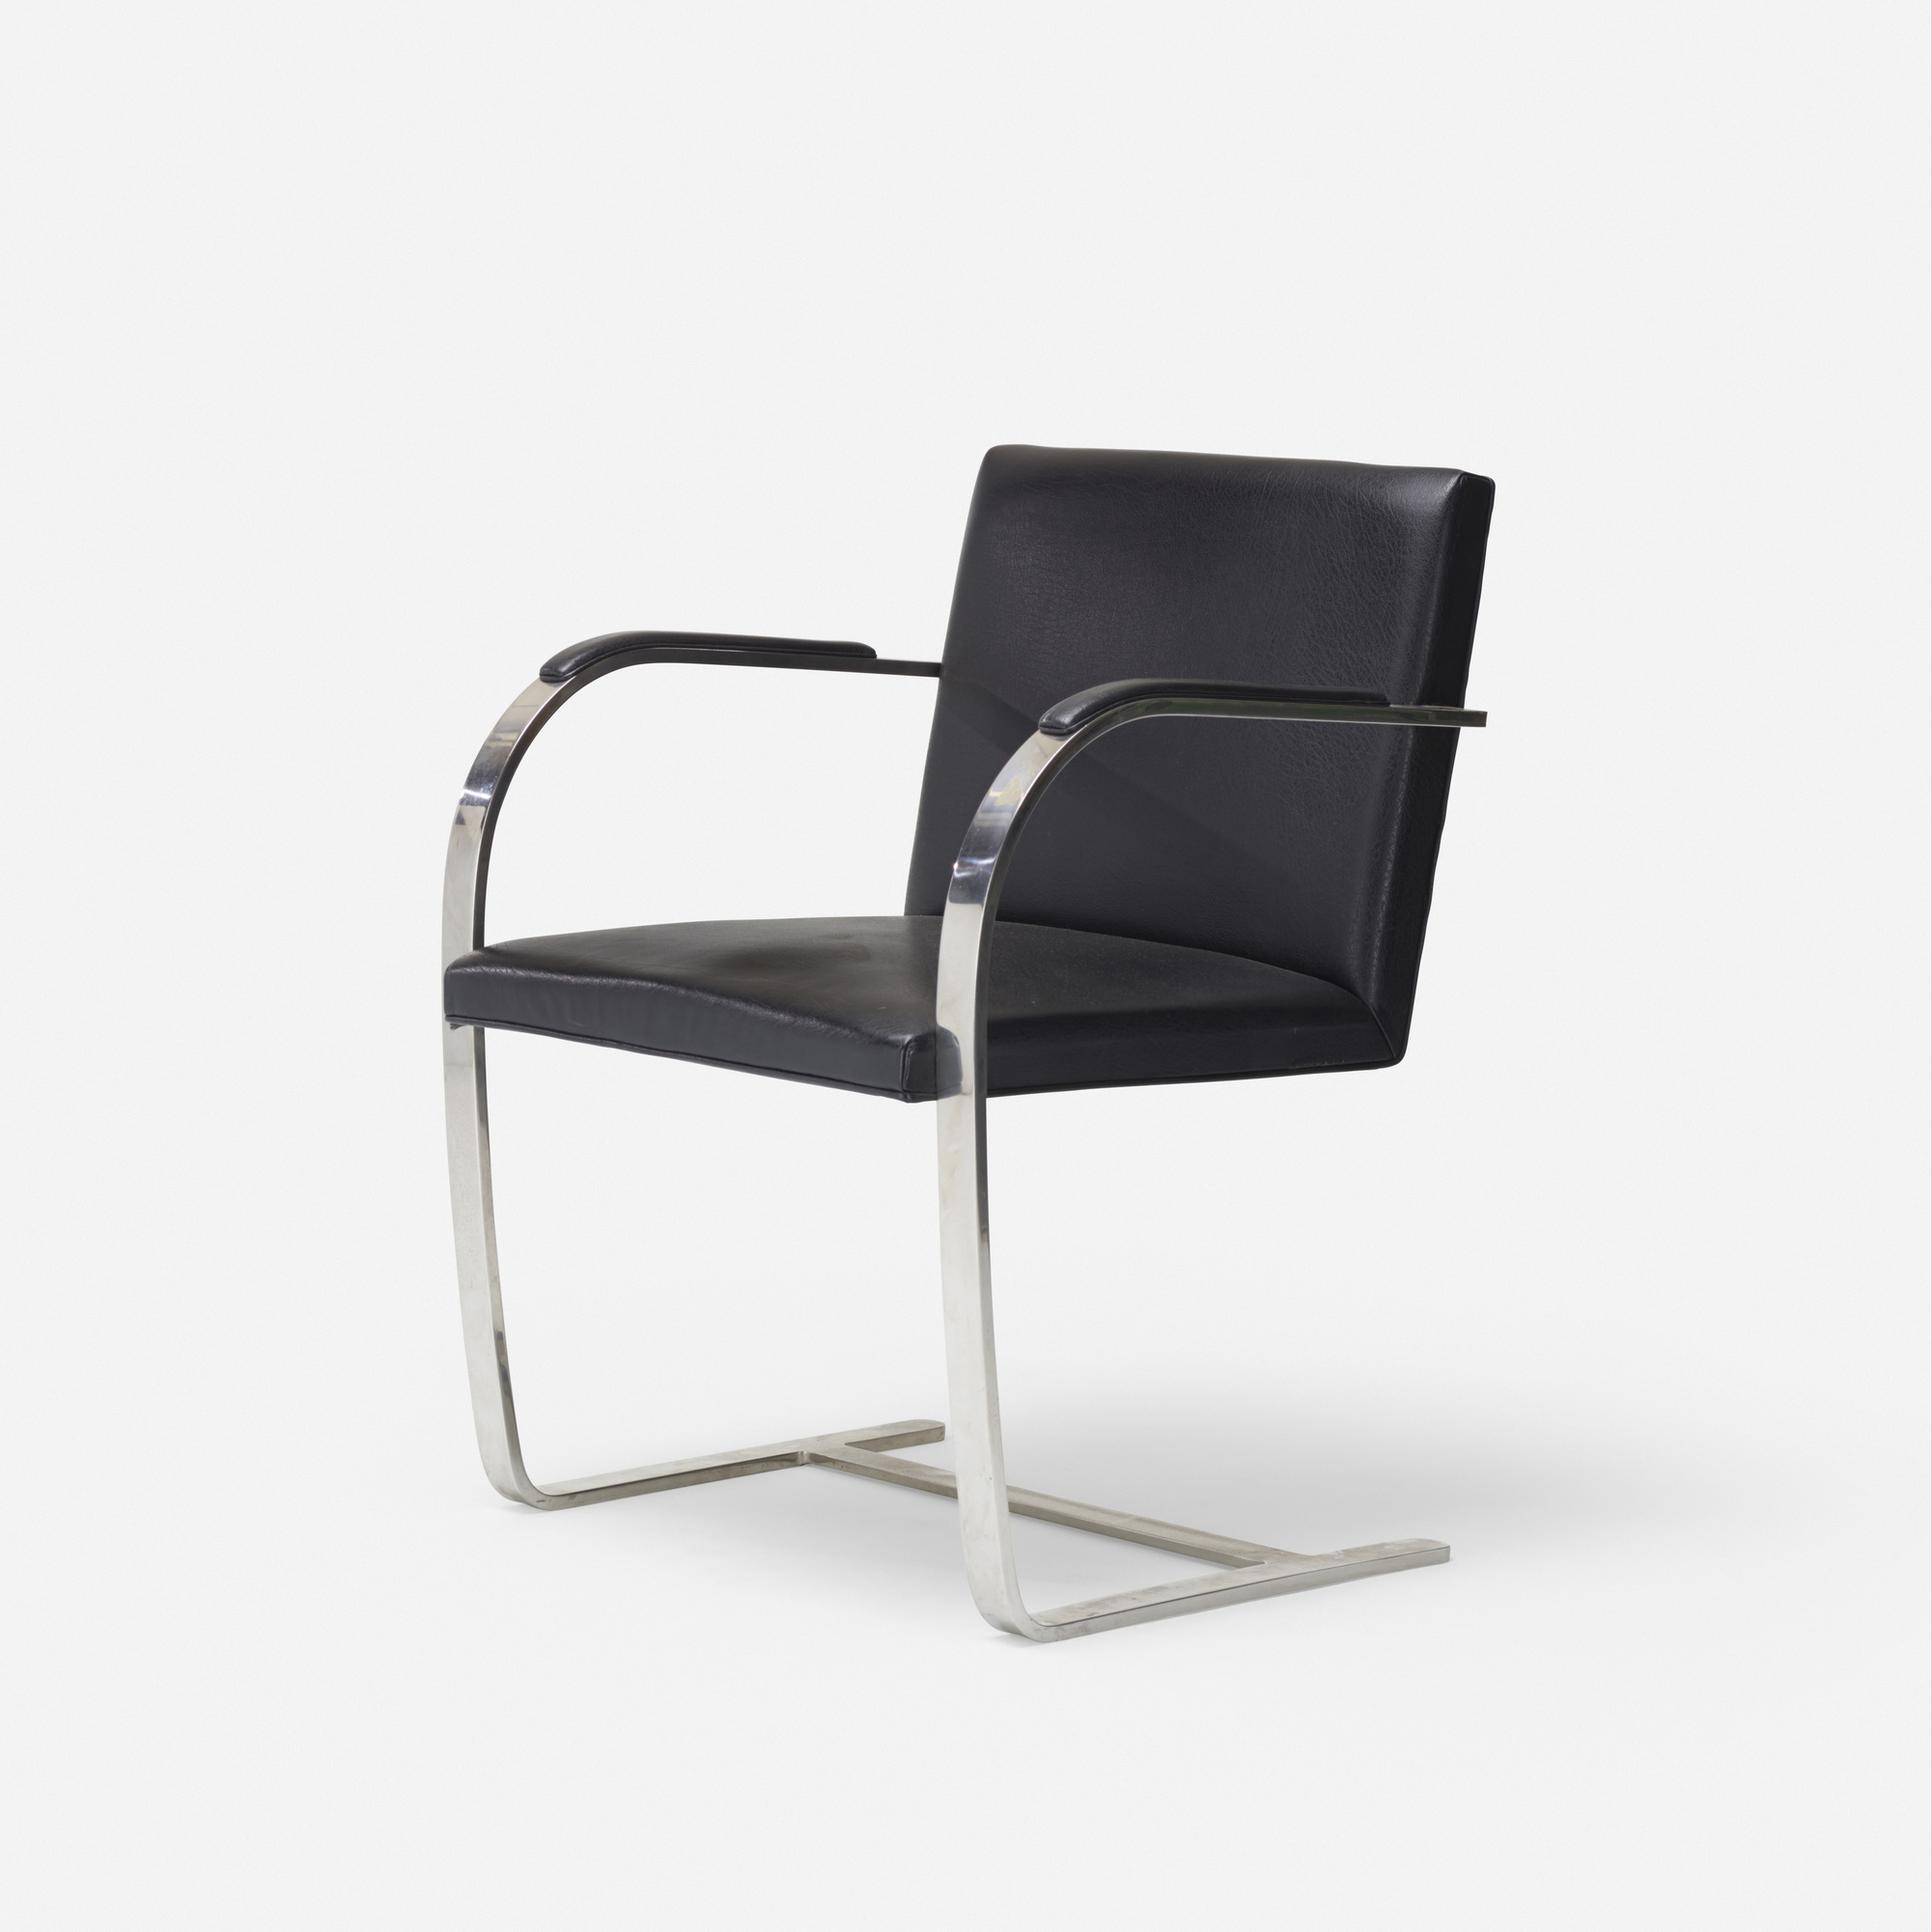 570: Ludwig Mies Van Der Rohe / Brno Chair (1 Of 2)